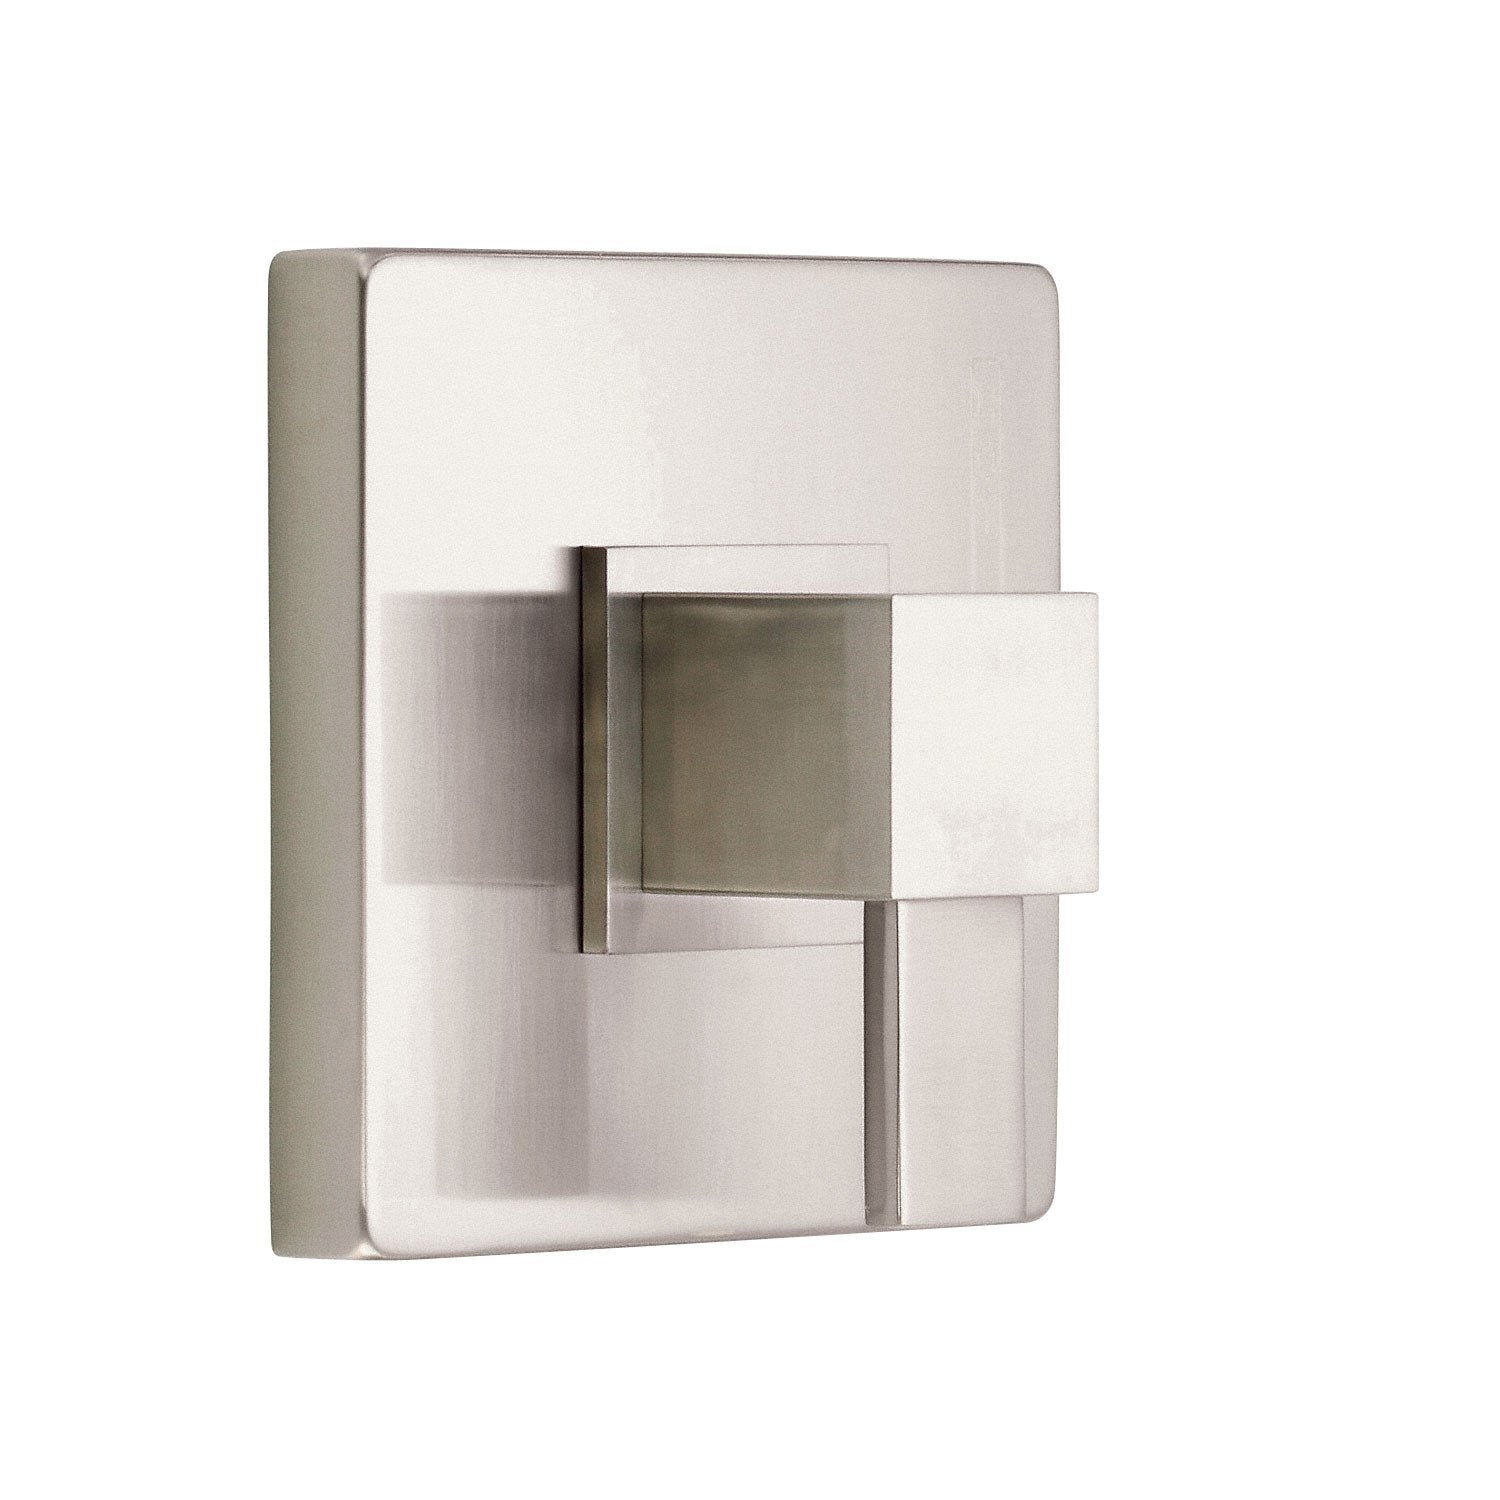 Danze Reef Brushed Nickel Single Handle Pressure Balance Square Shower Control INCLUDES Rough-in Valve